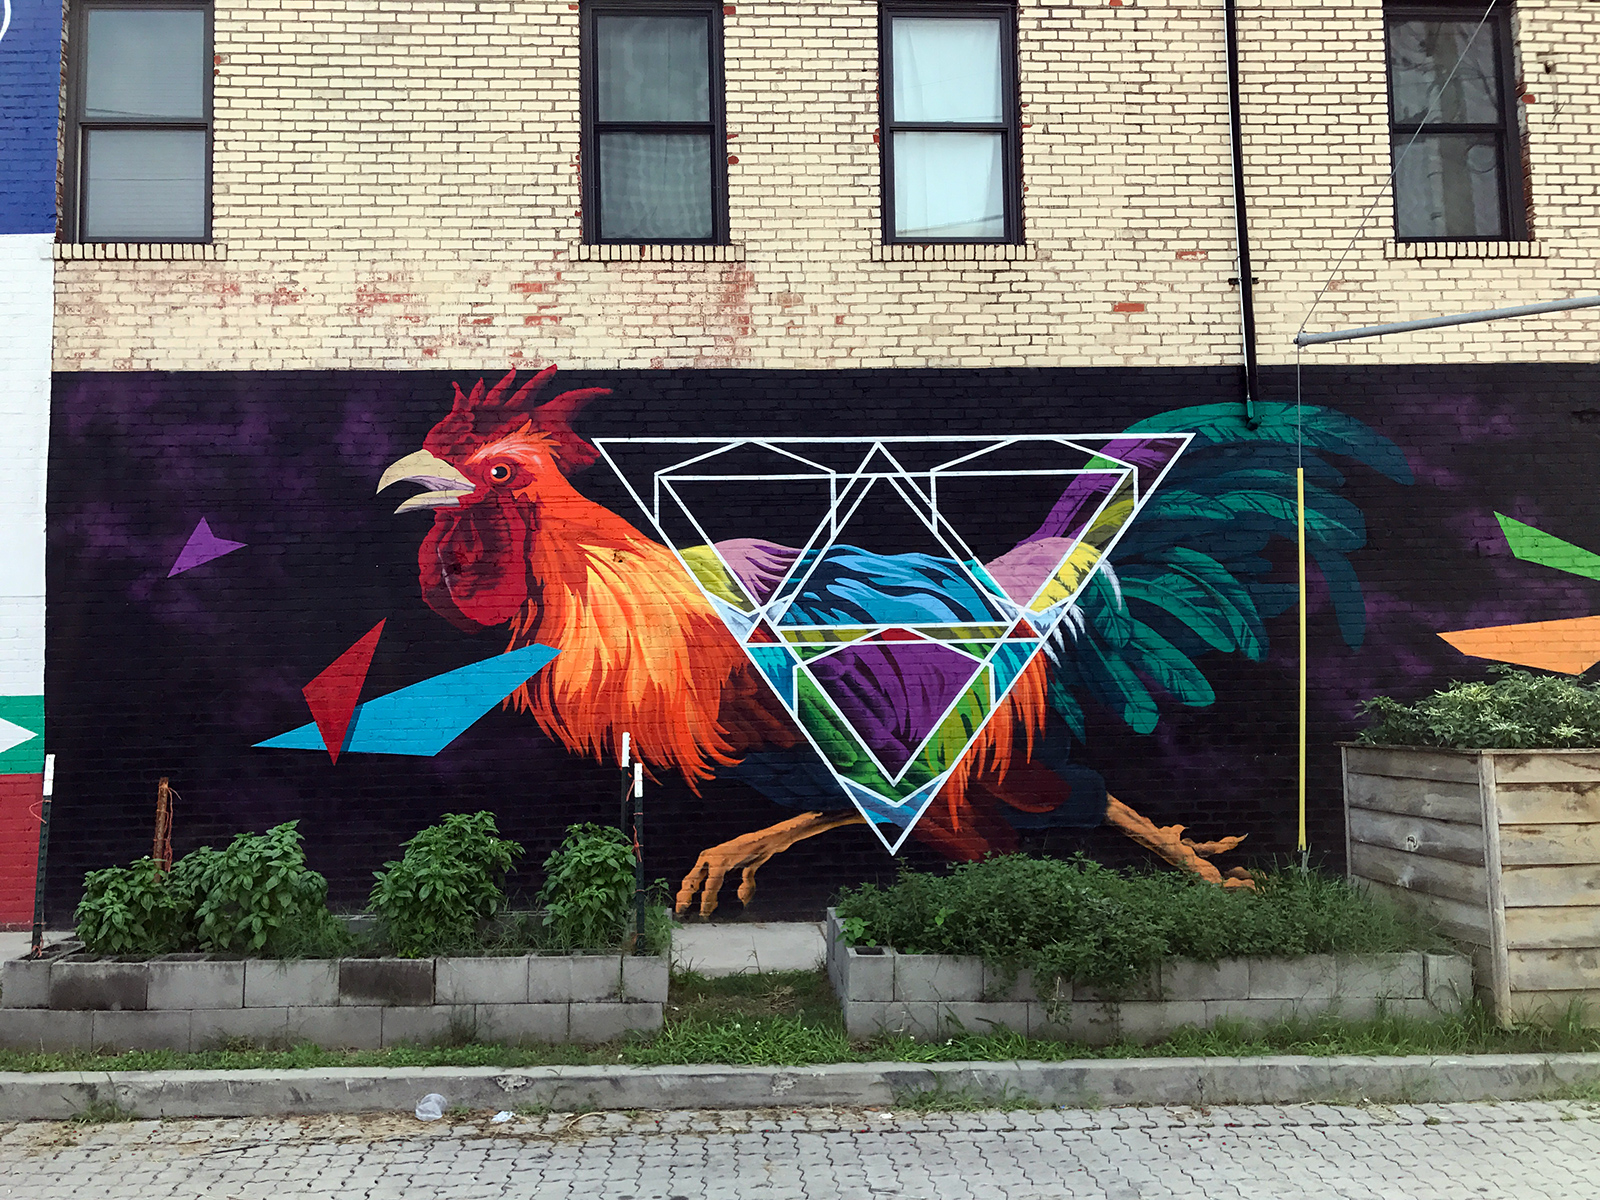 Street Art in Chattanooga, TN by Jets Like Taxis